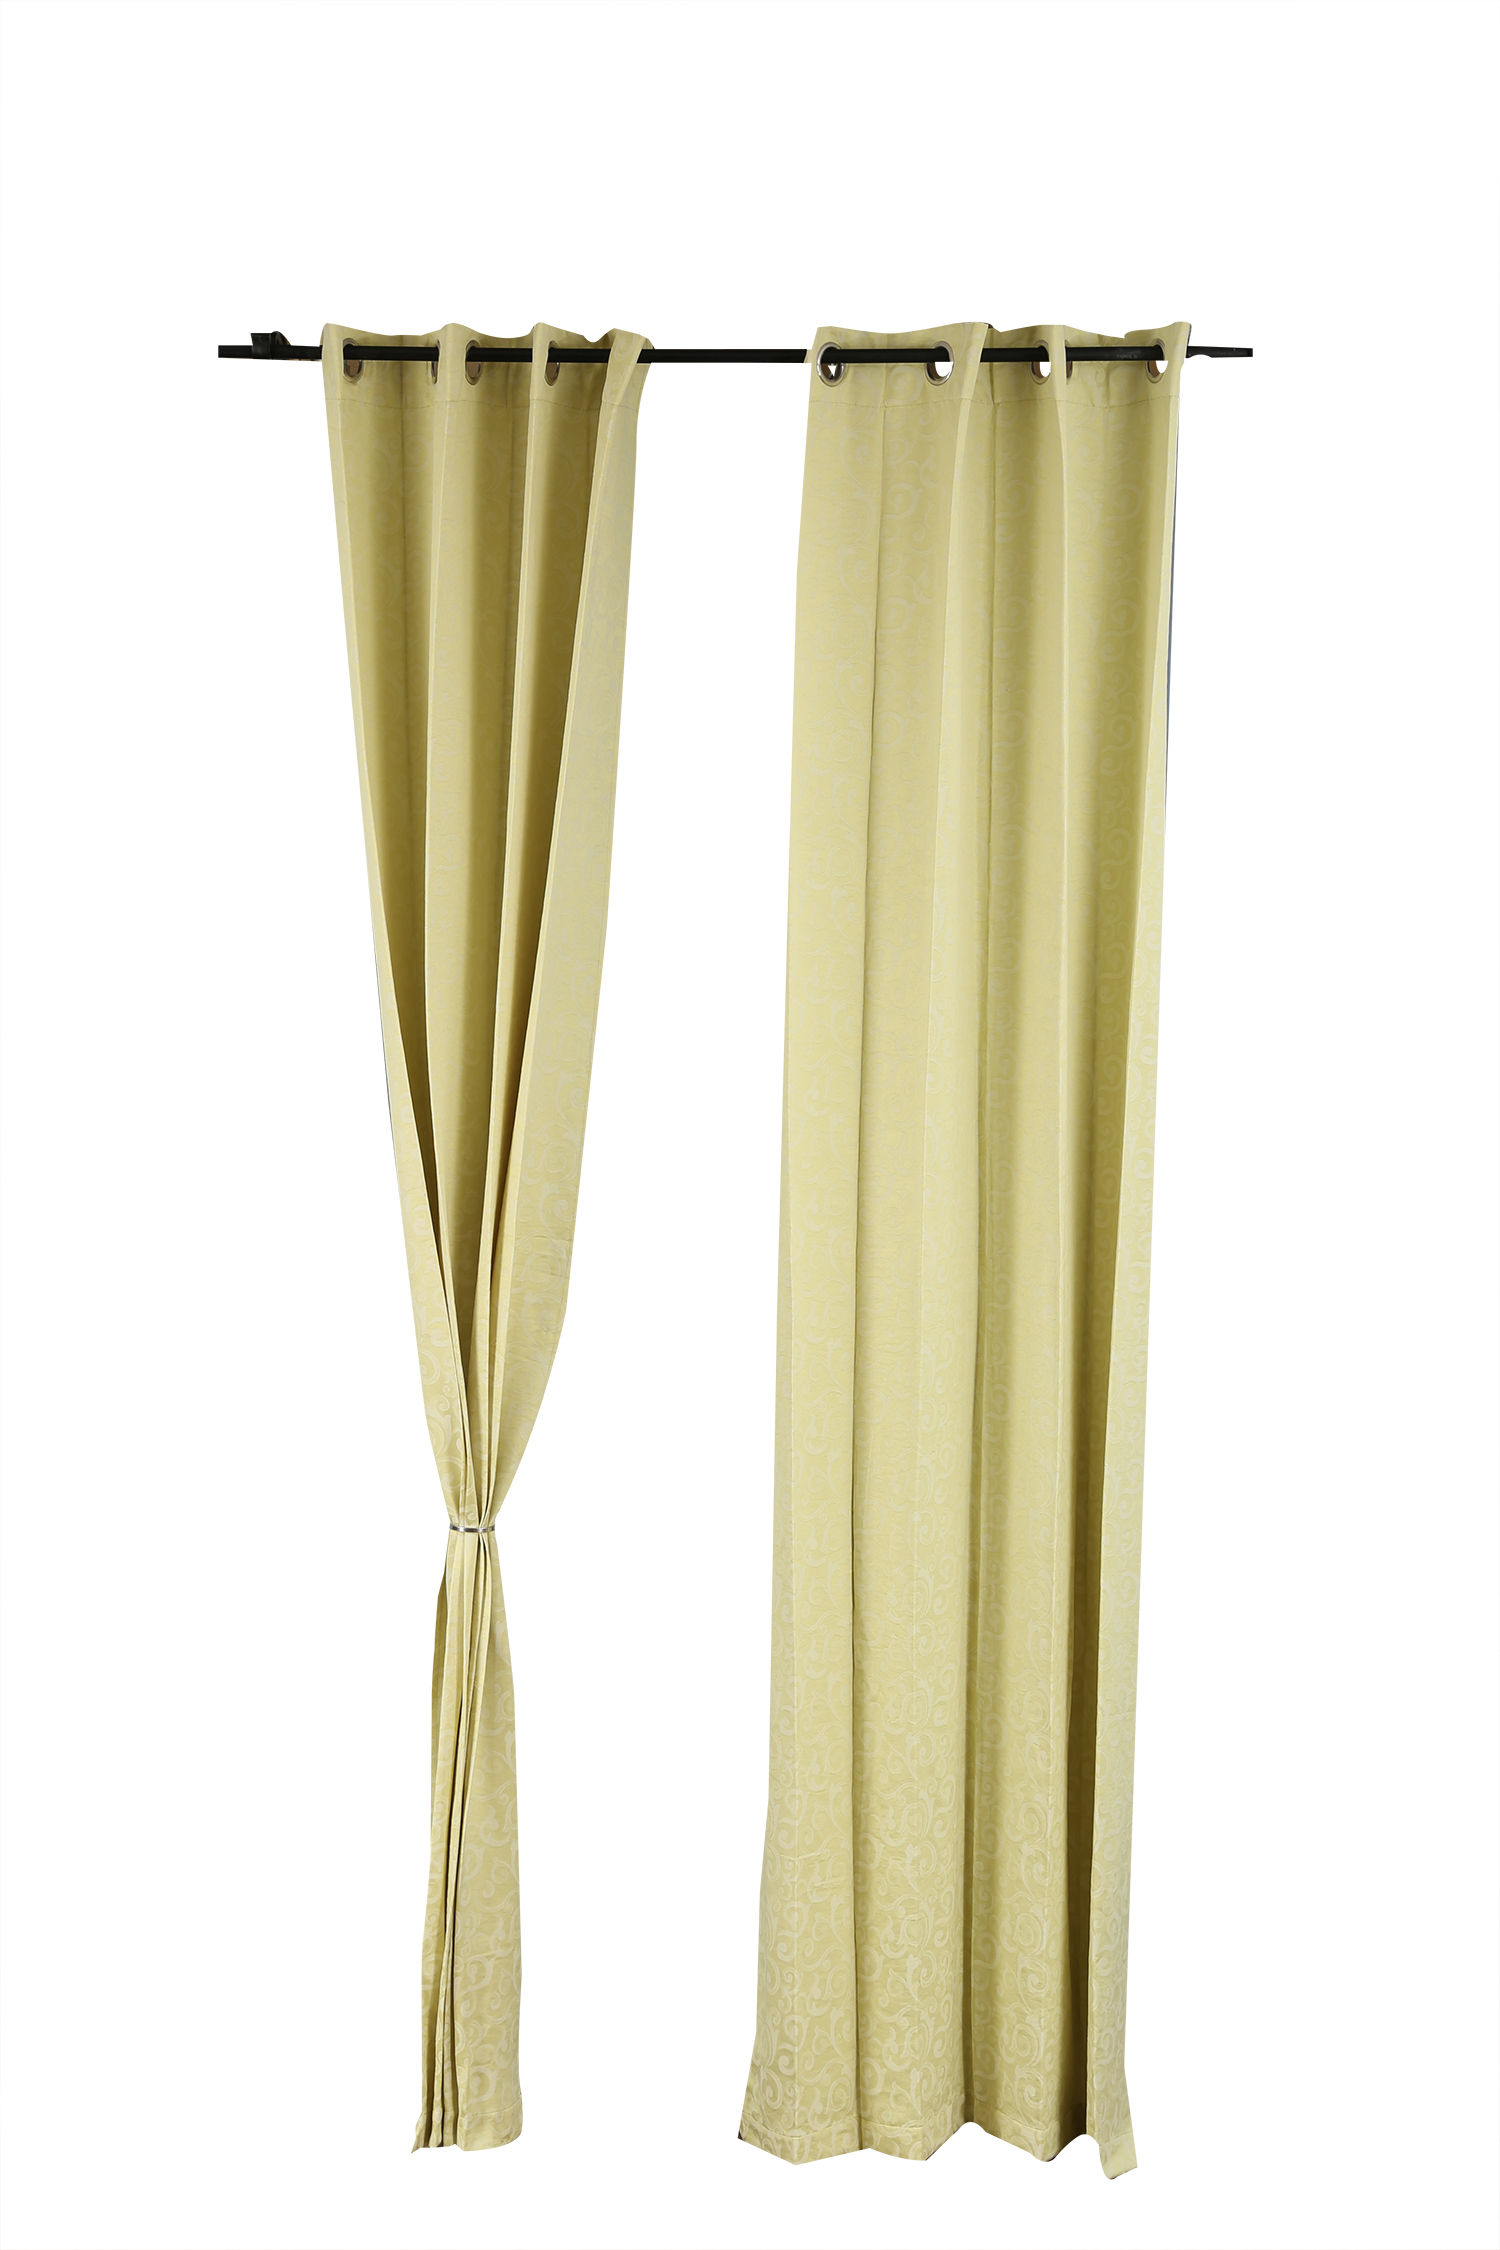 Florina Door Curtain Lime Ice Polyester Door Curtains in Lime Ice Colour by Living Essence